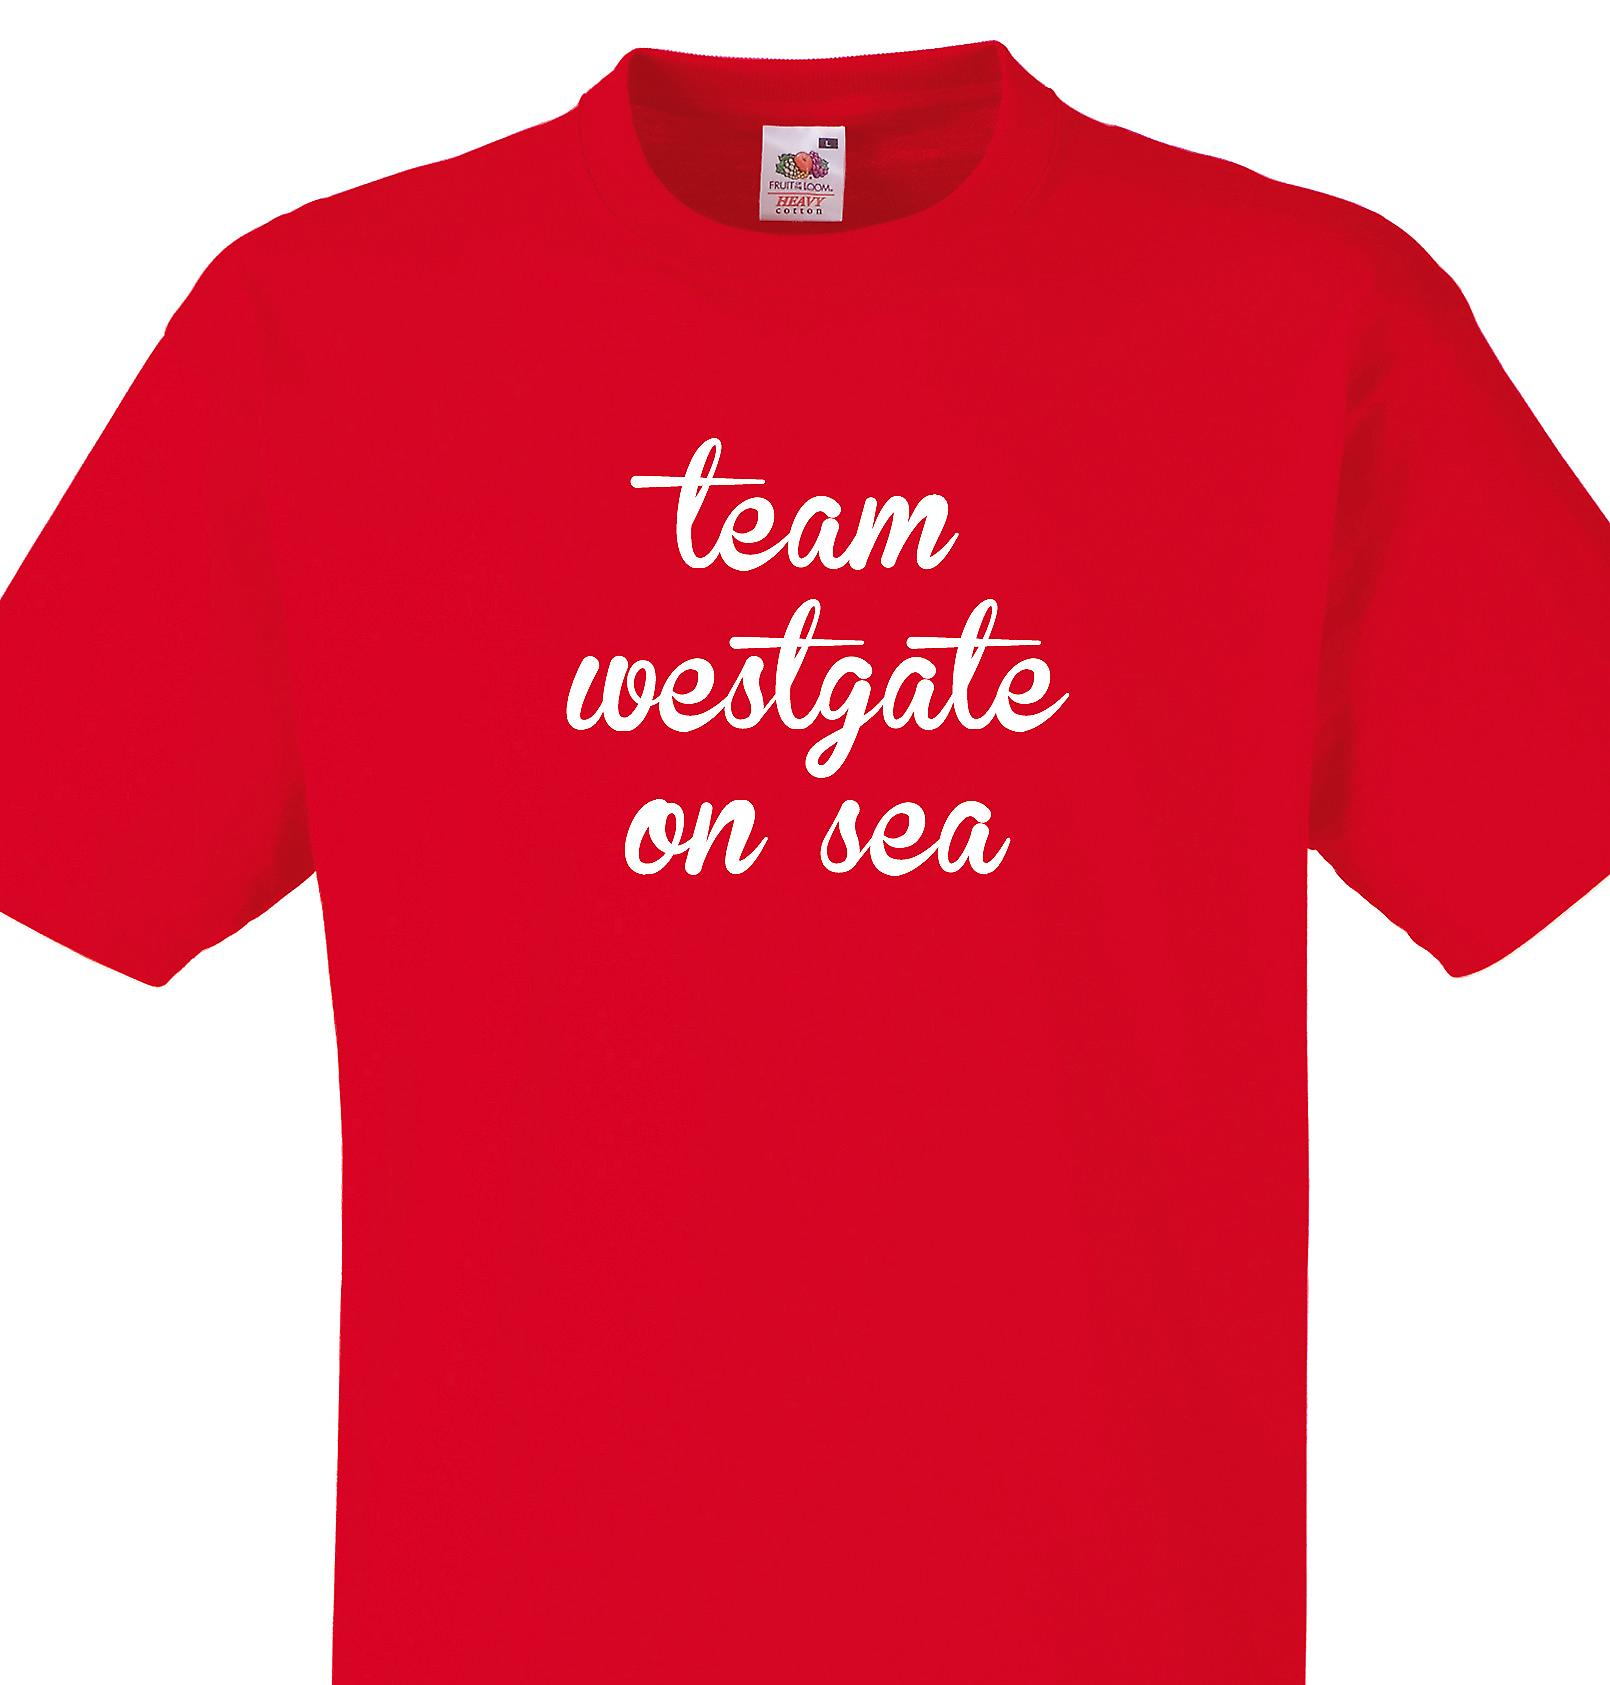 Team Westgate on sea Red T shirt